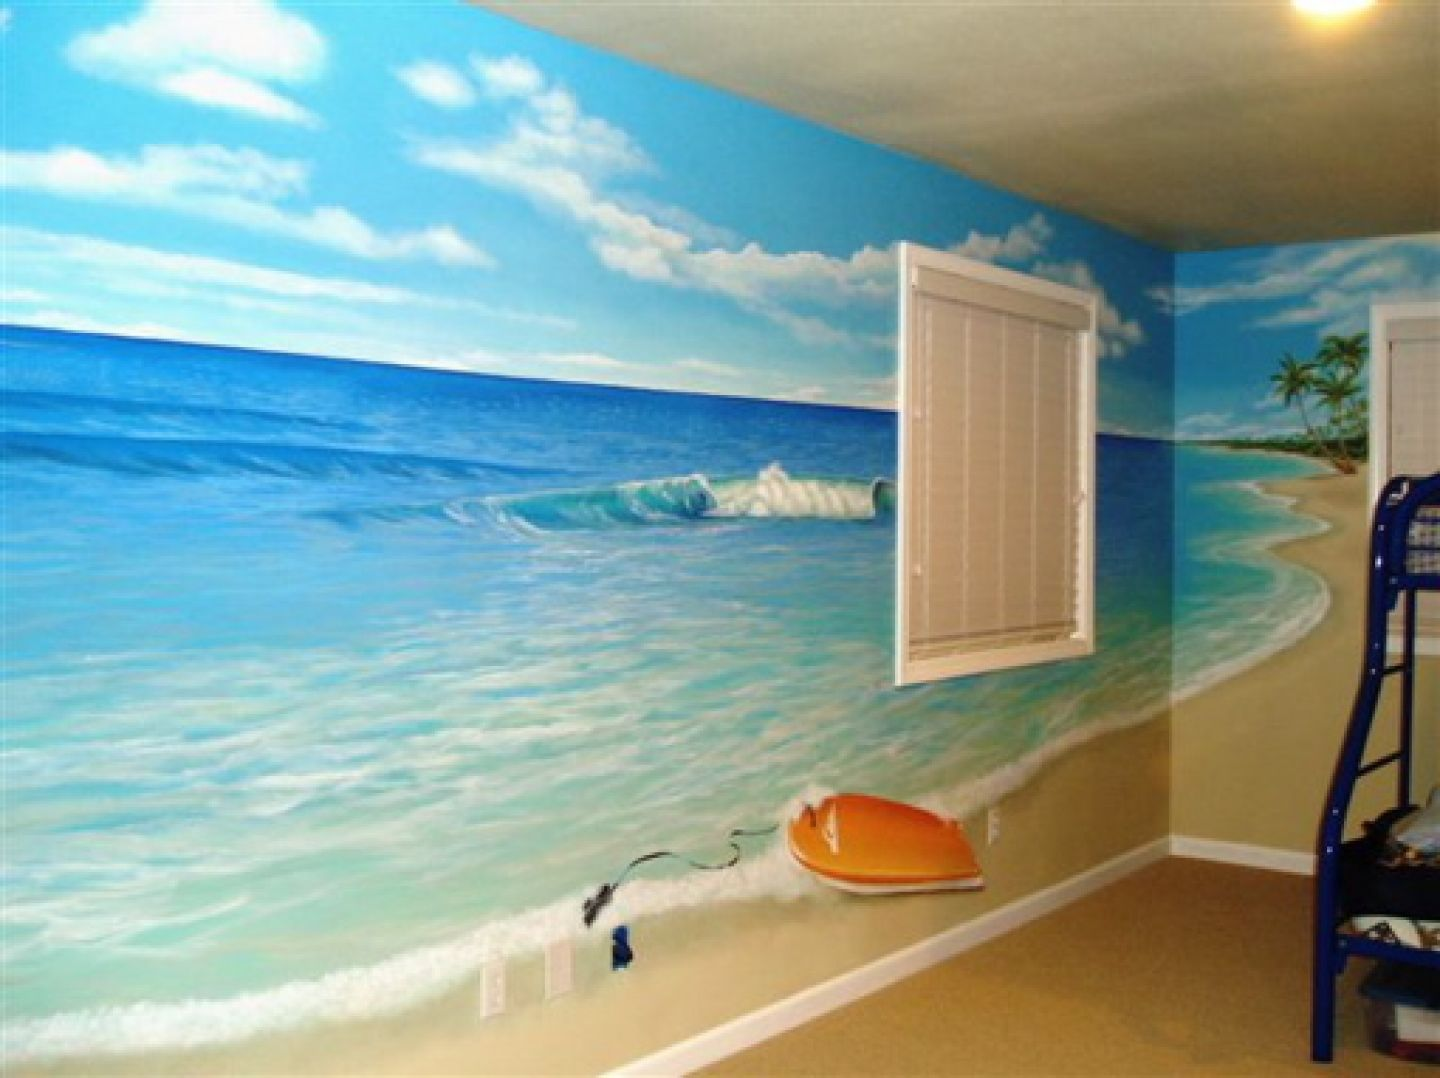 beach mural ideas to paint on divider wall tags beach beach bathroom themes beach bedroom